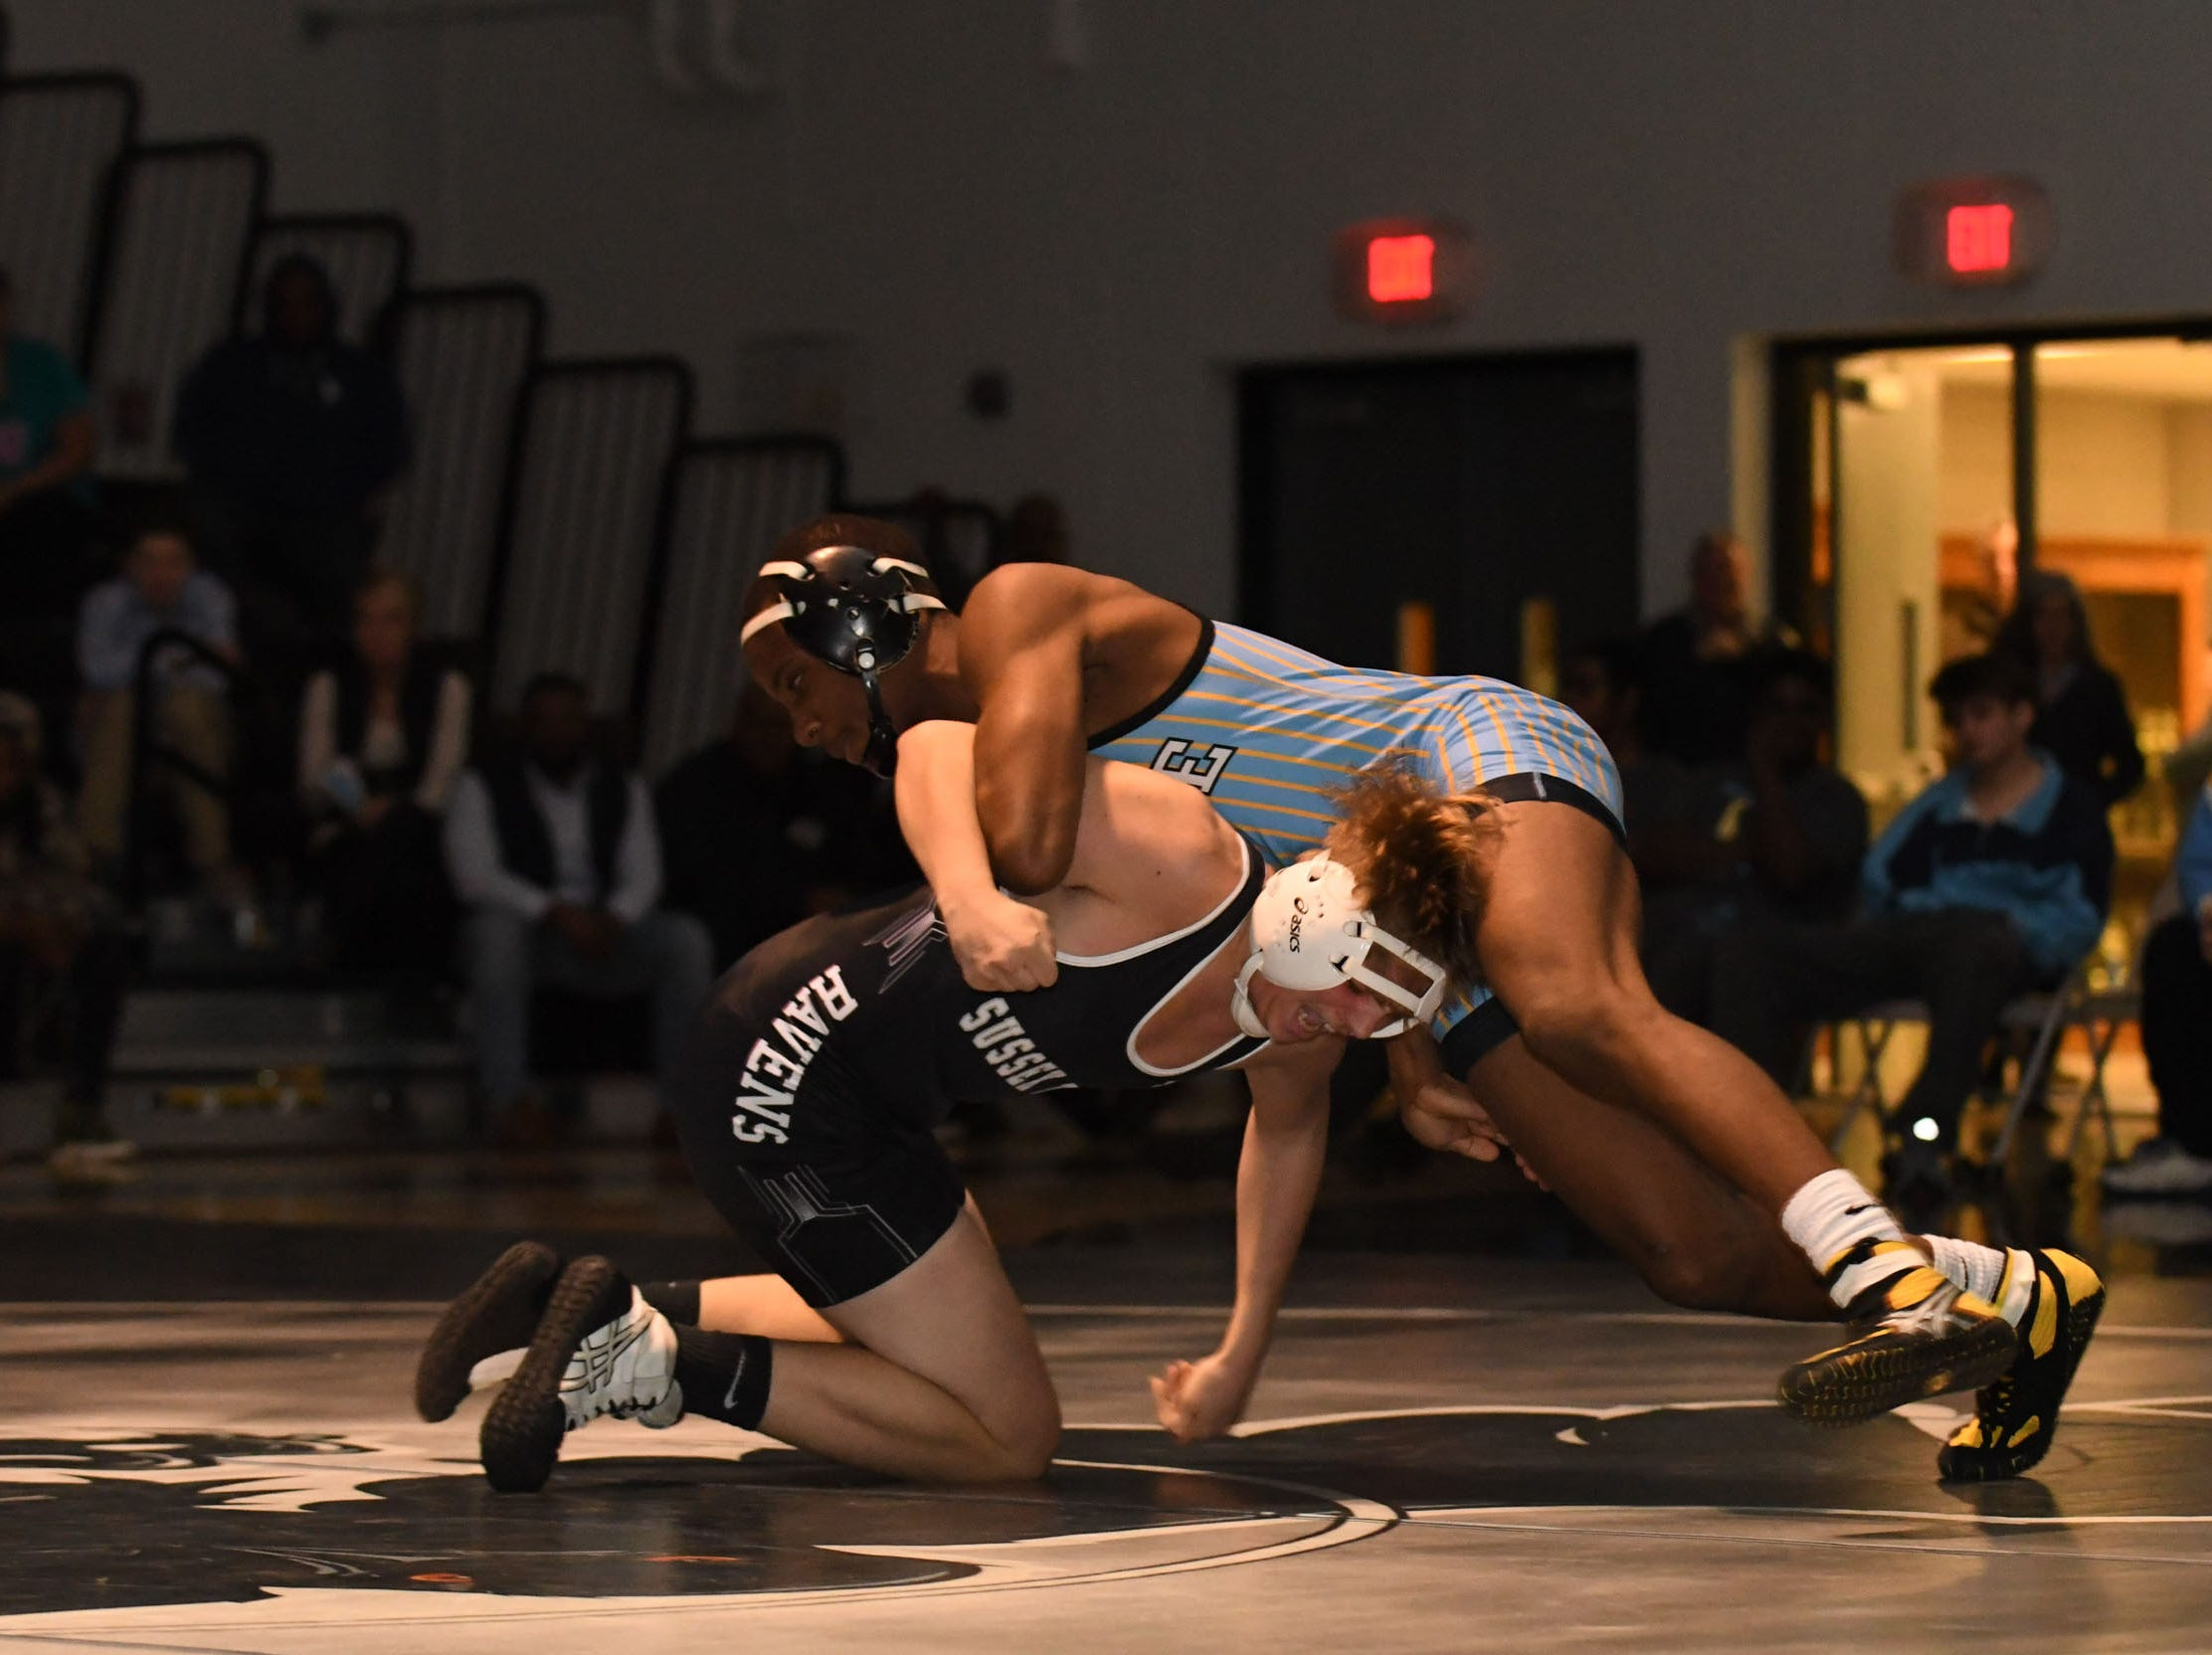 Sussex Tech's Trent Broomall faced off against Cape Henlopen's Andre Currie during the 152lb match on Wedenesday, Jan. 23, 2019 at Sussex Tech High School in Georgetown, Del.